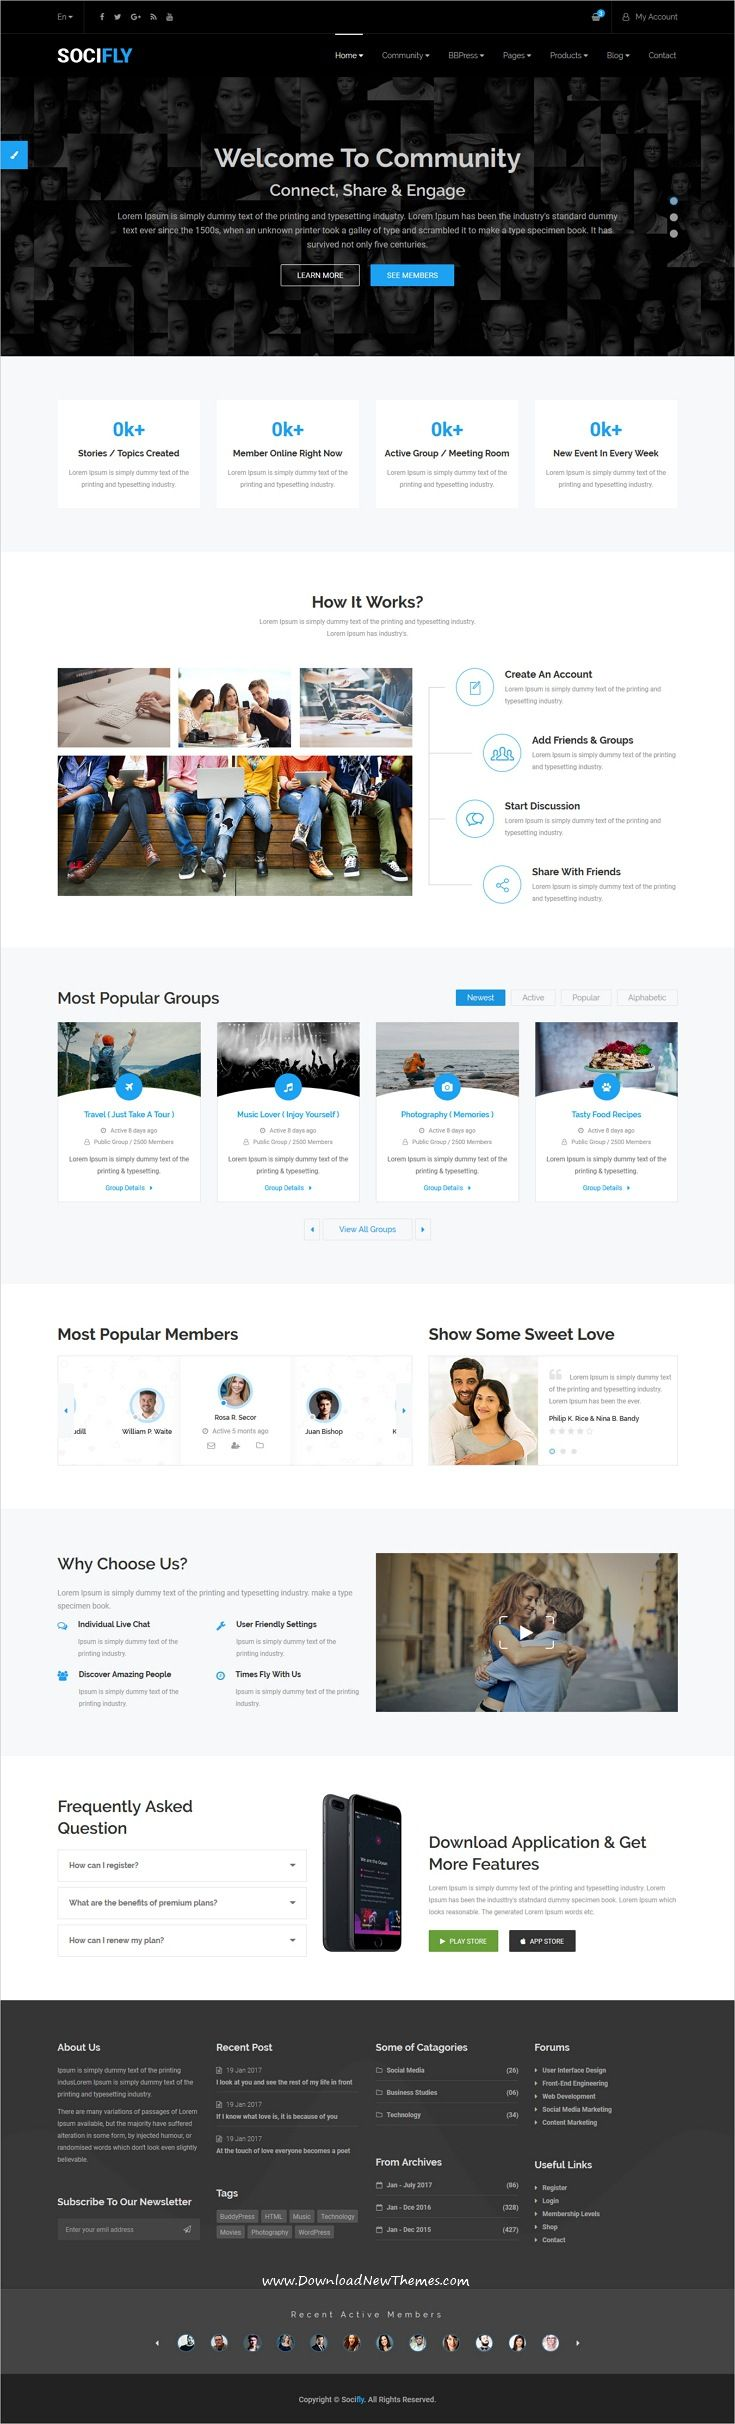 Socifly multipurpose social network html5 template pinterest socifly multipurpose social network html5 template pinterest social networks and template maxwellsz